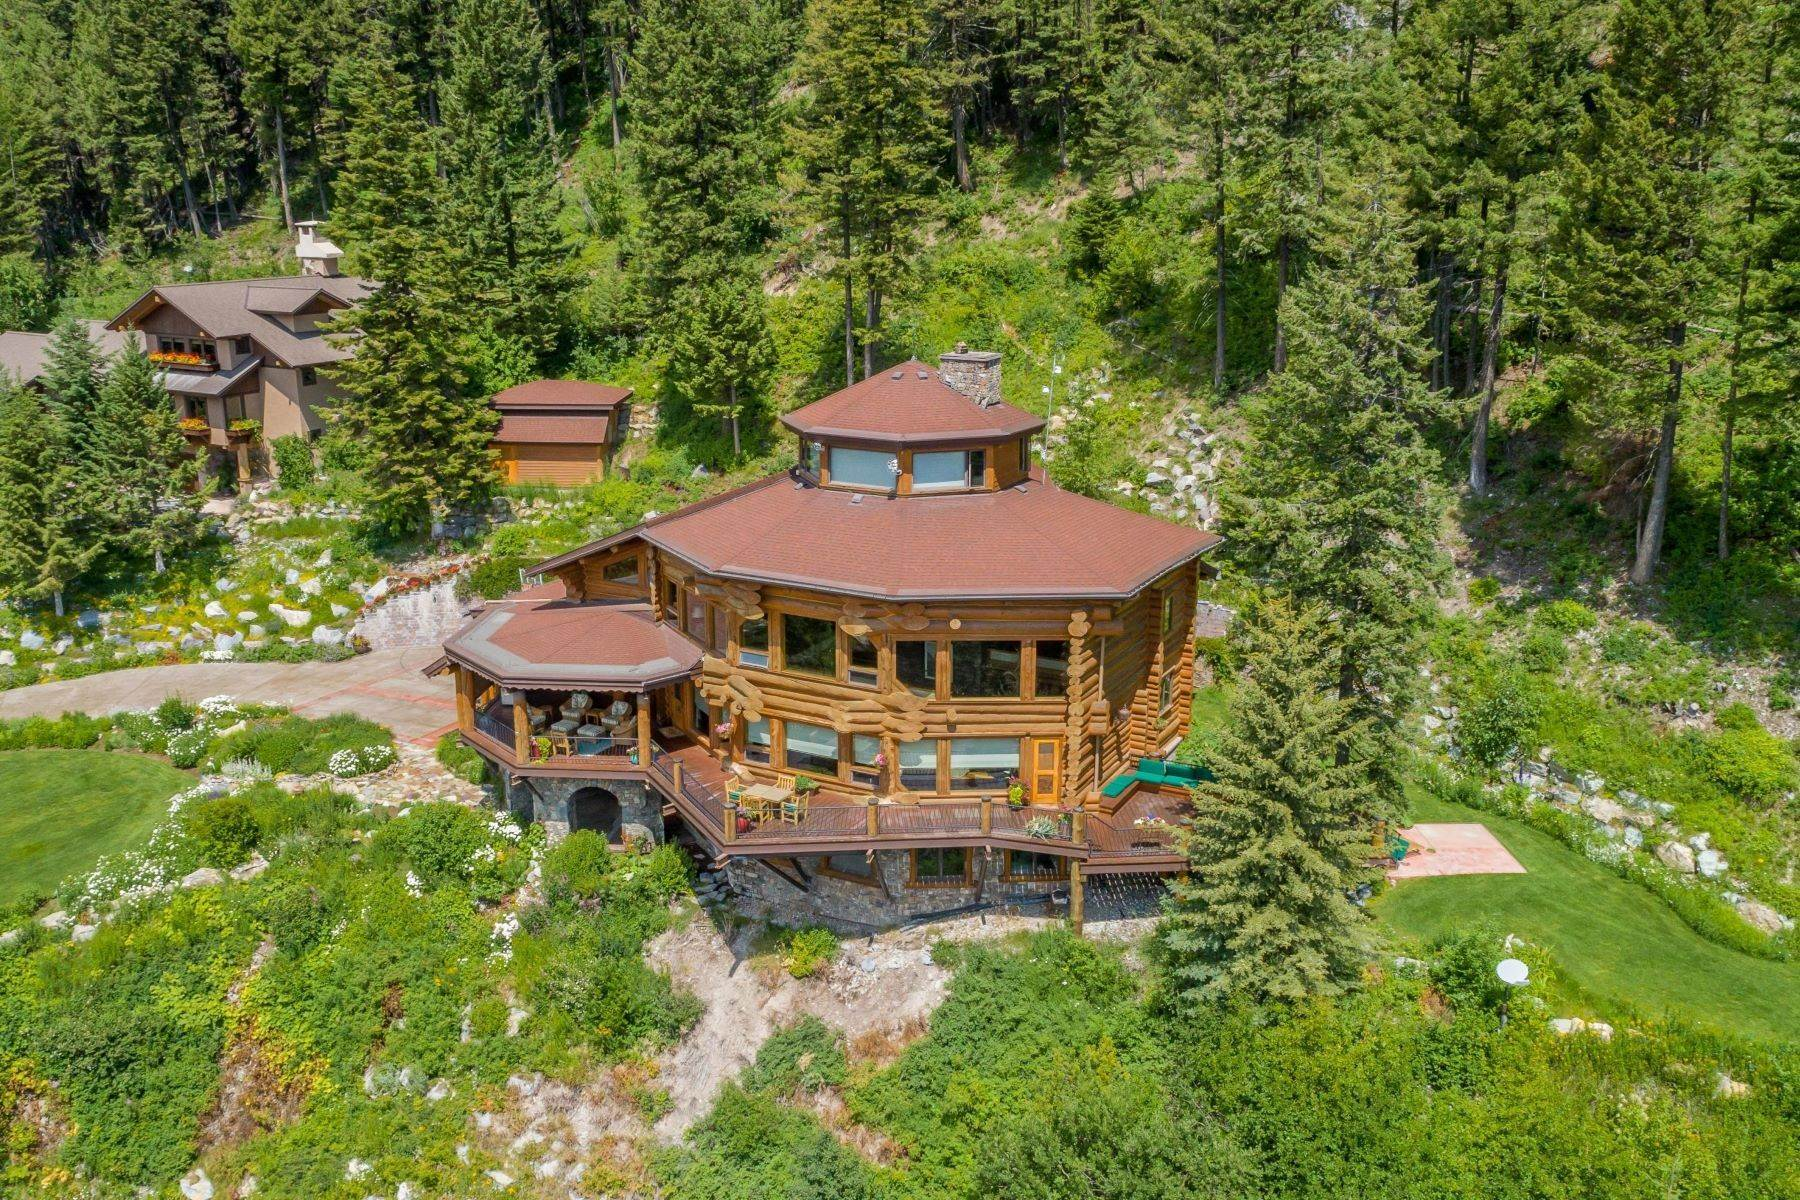 Single Family Homes for Sale at Overlooking Whitefish Lake 87 Eagles Nest Lane Whitefish, Montana 59937 United States